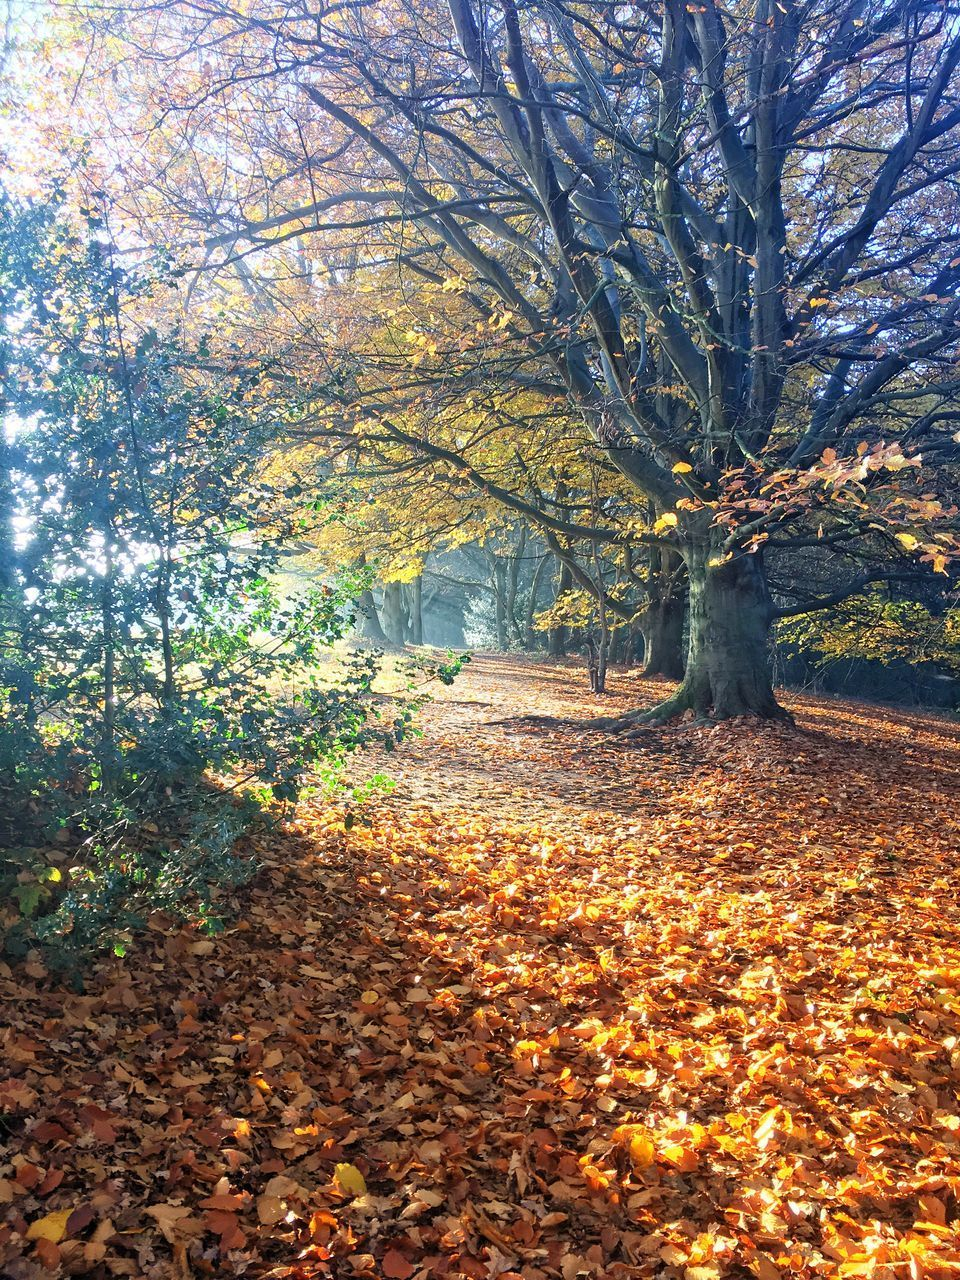 autumn, tree, change, leaf, nature, tranquility, beauty in nature, scenics, tranquil scene, branch, day, landscape, no people, outdoors, sunlight, forest